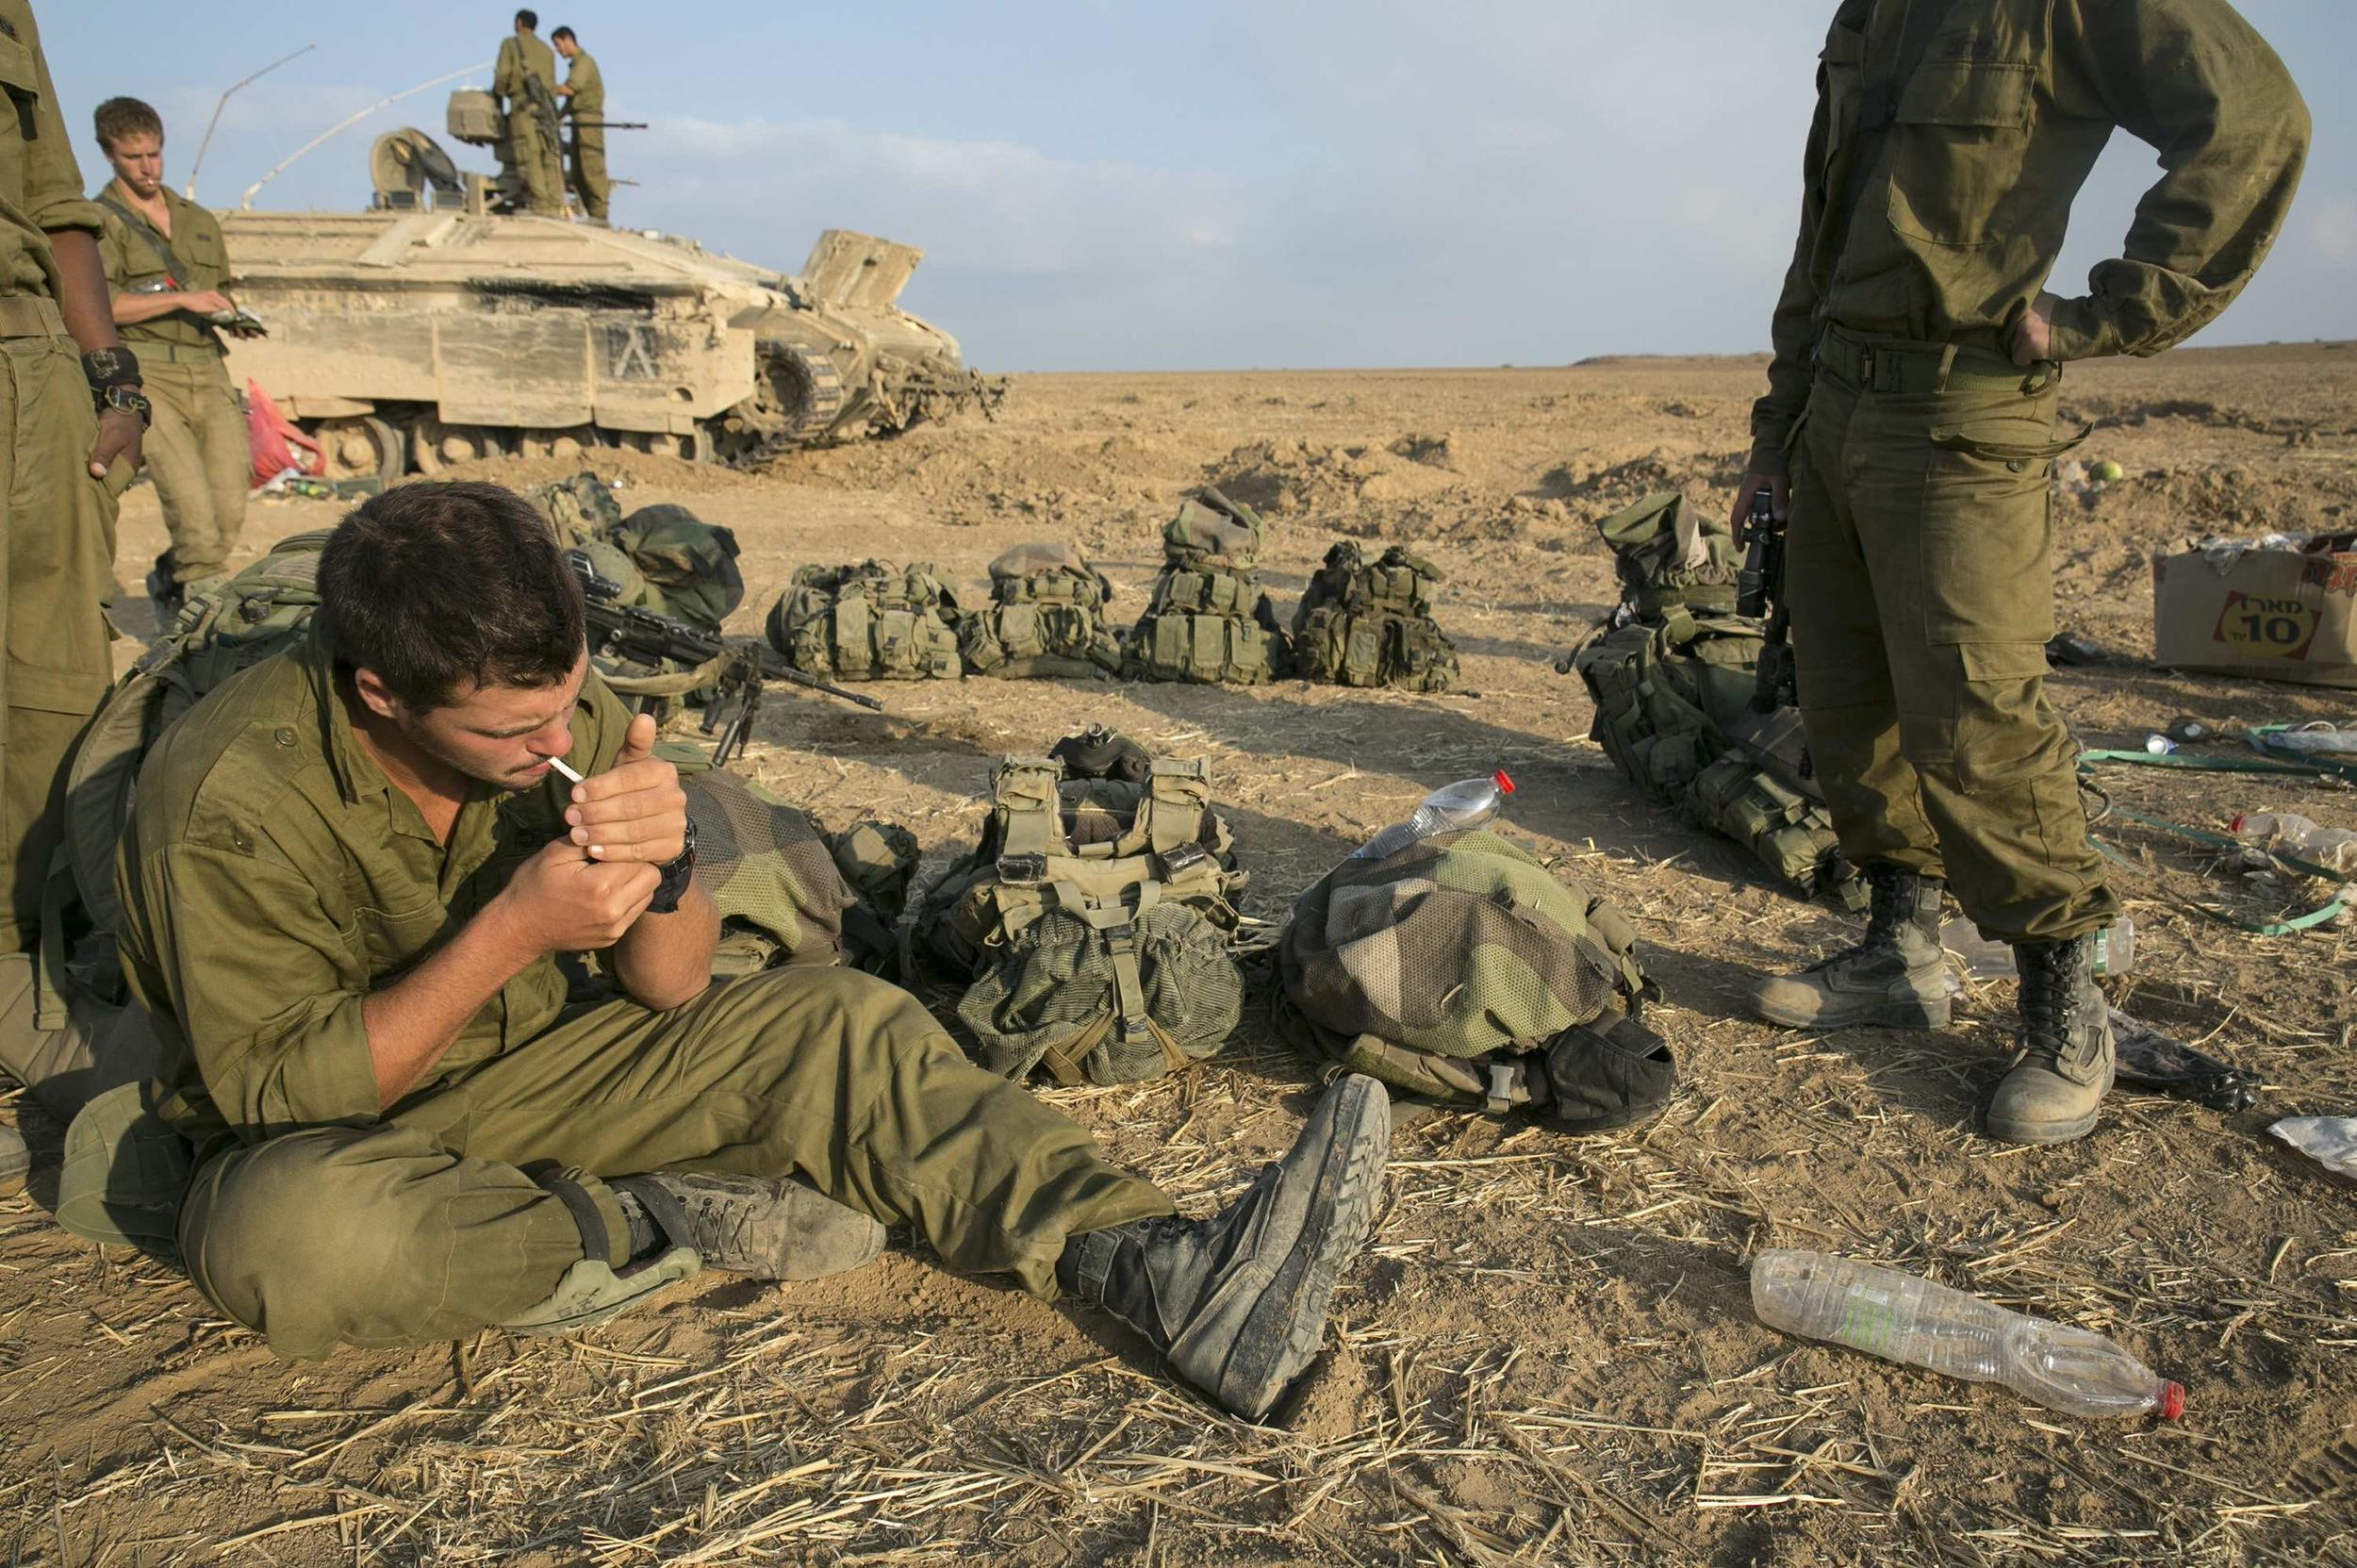 Image: An Israeli soldier smokes a cigarette after crossing back into Israel from Gaza